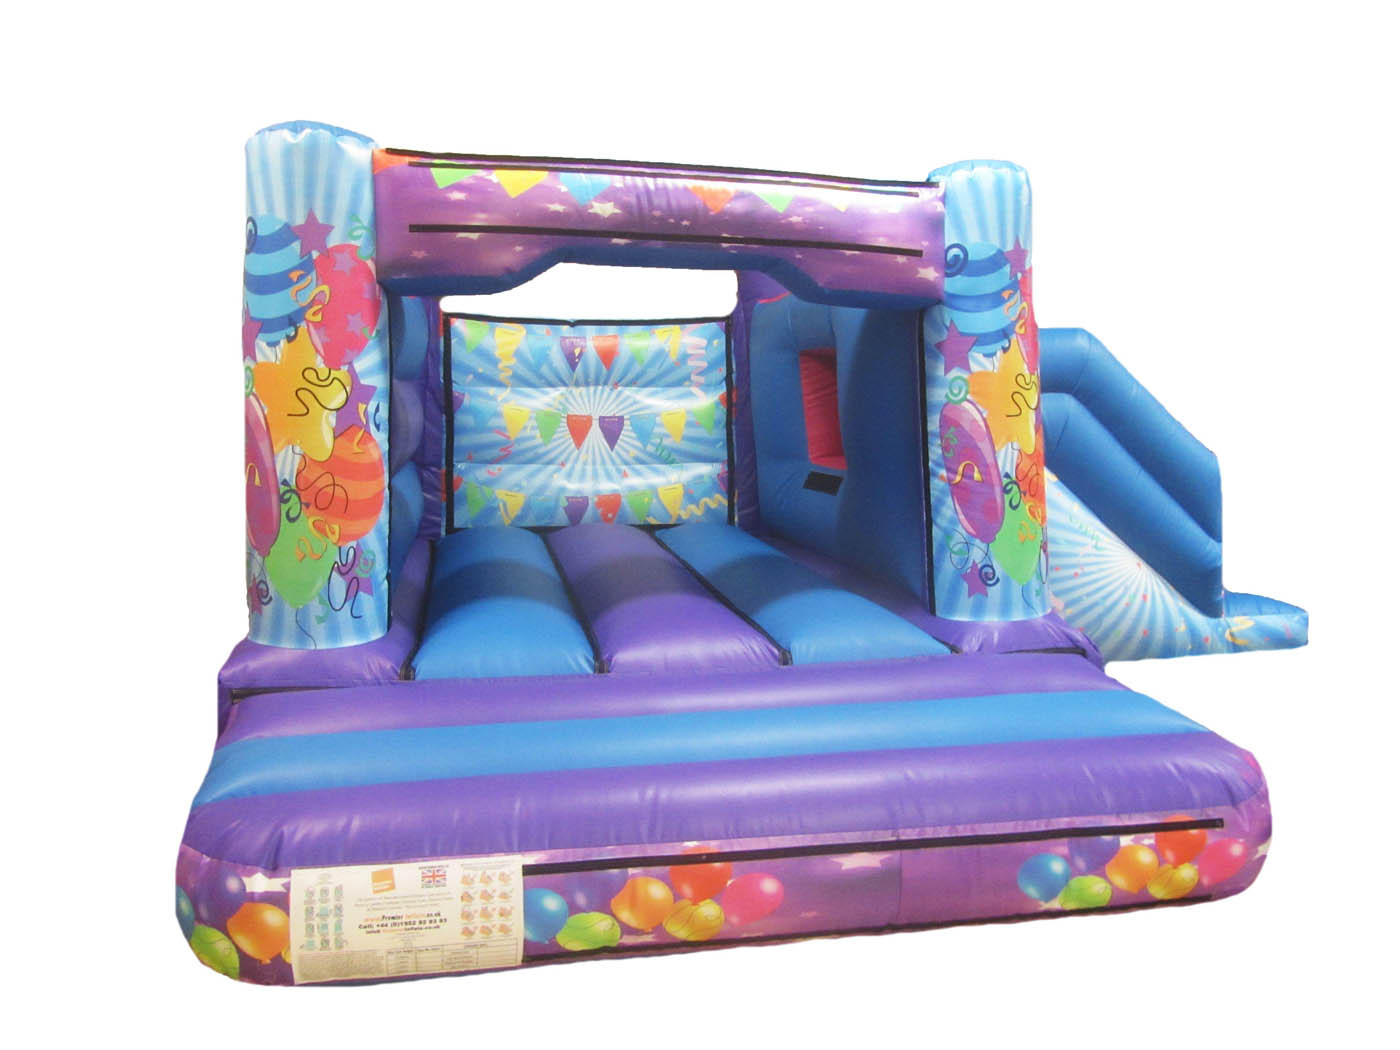 17x15-4post-combi-childrens-bouncy-castle-compressor